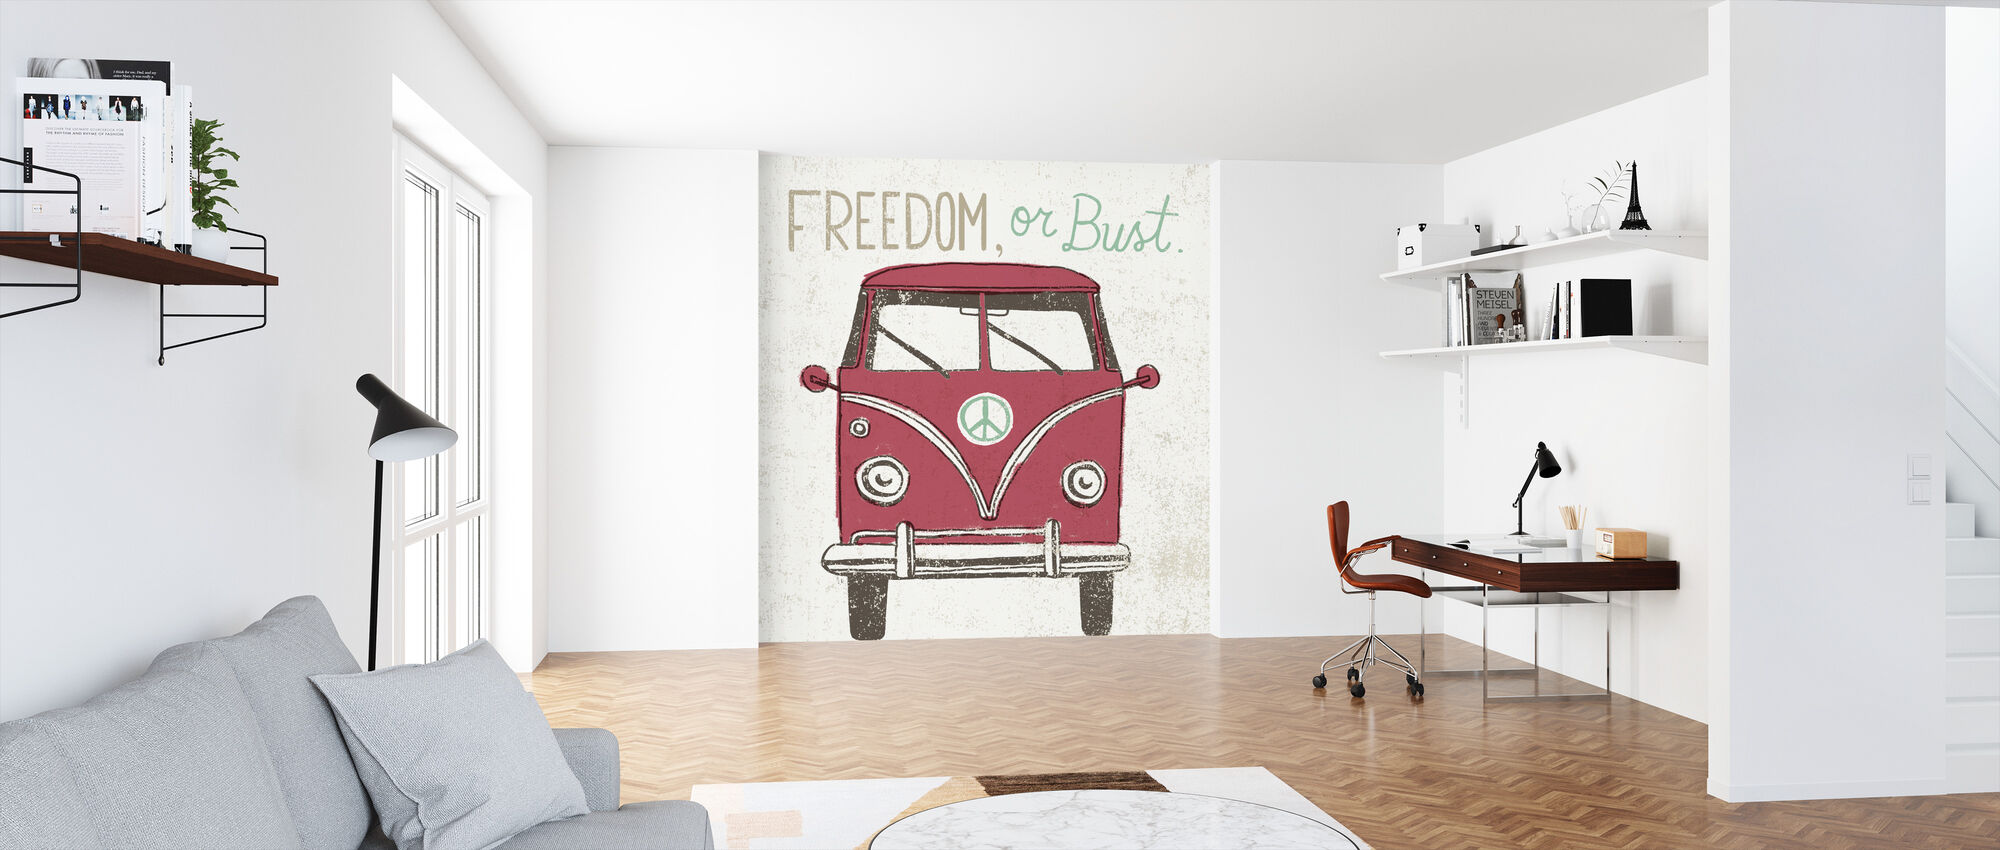 Road Trip - Bus - Wallpaper - Office